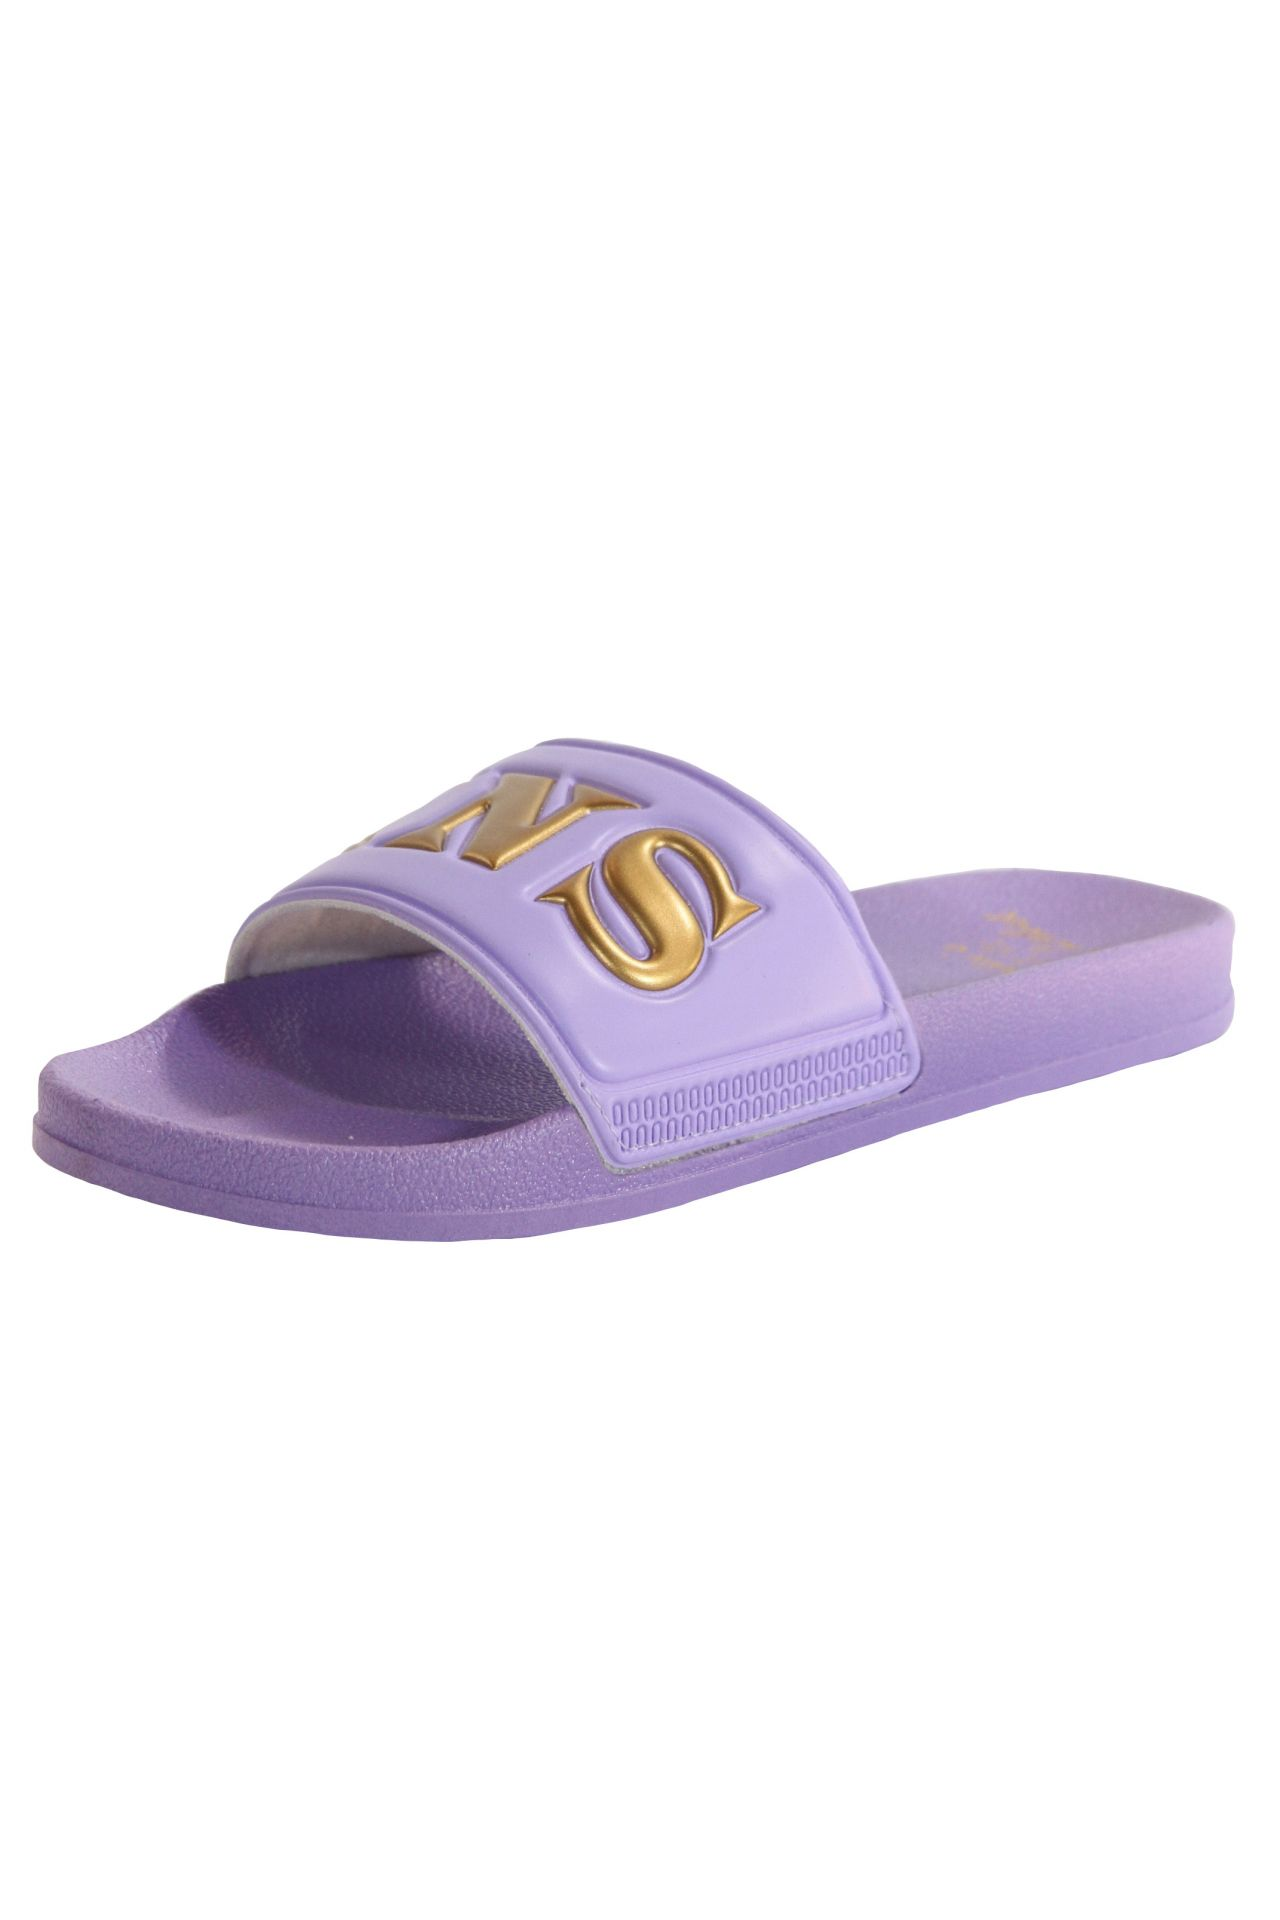 ROBIN SLIDES IN PURPLE AND GOLD